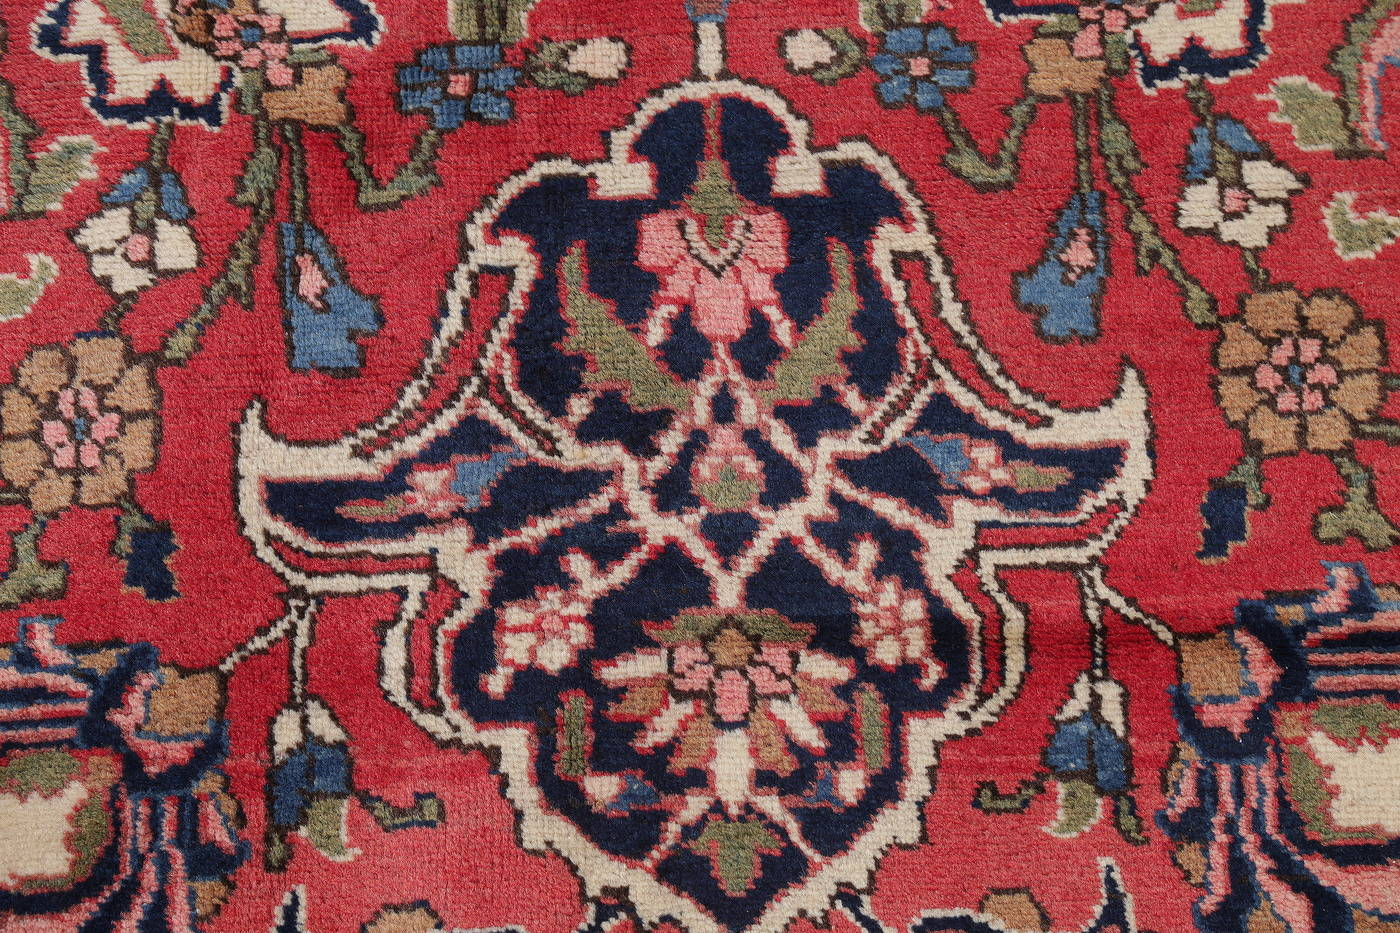 Antique Vegetable Dye Bakhtiari Persian Area Rug 12x14 image 9